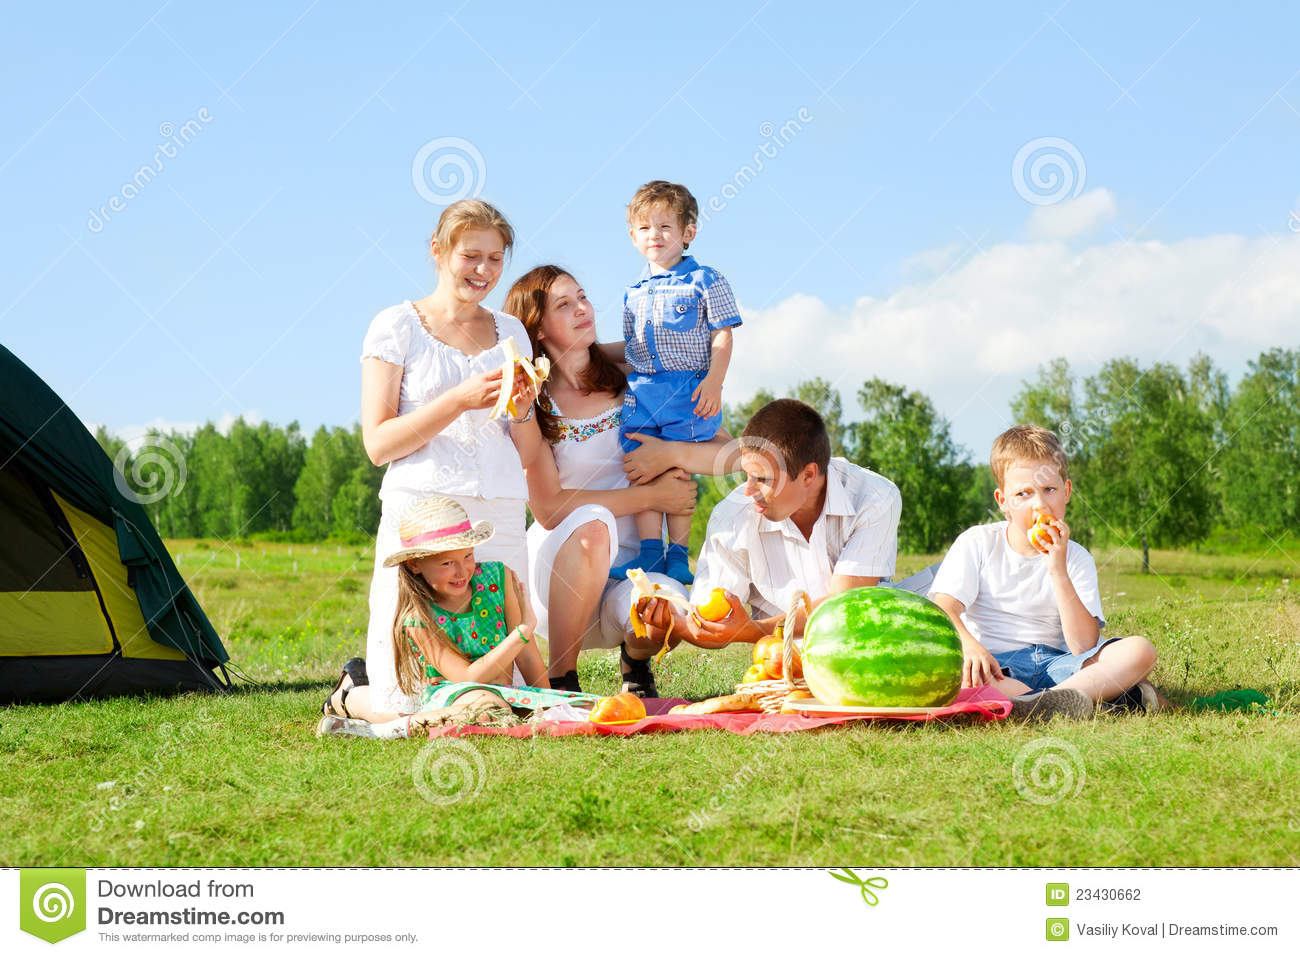 Family Picnic Stock Photography - Image: 23430662